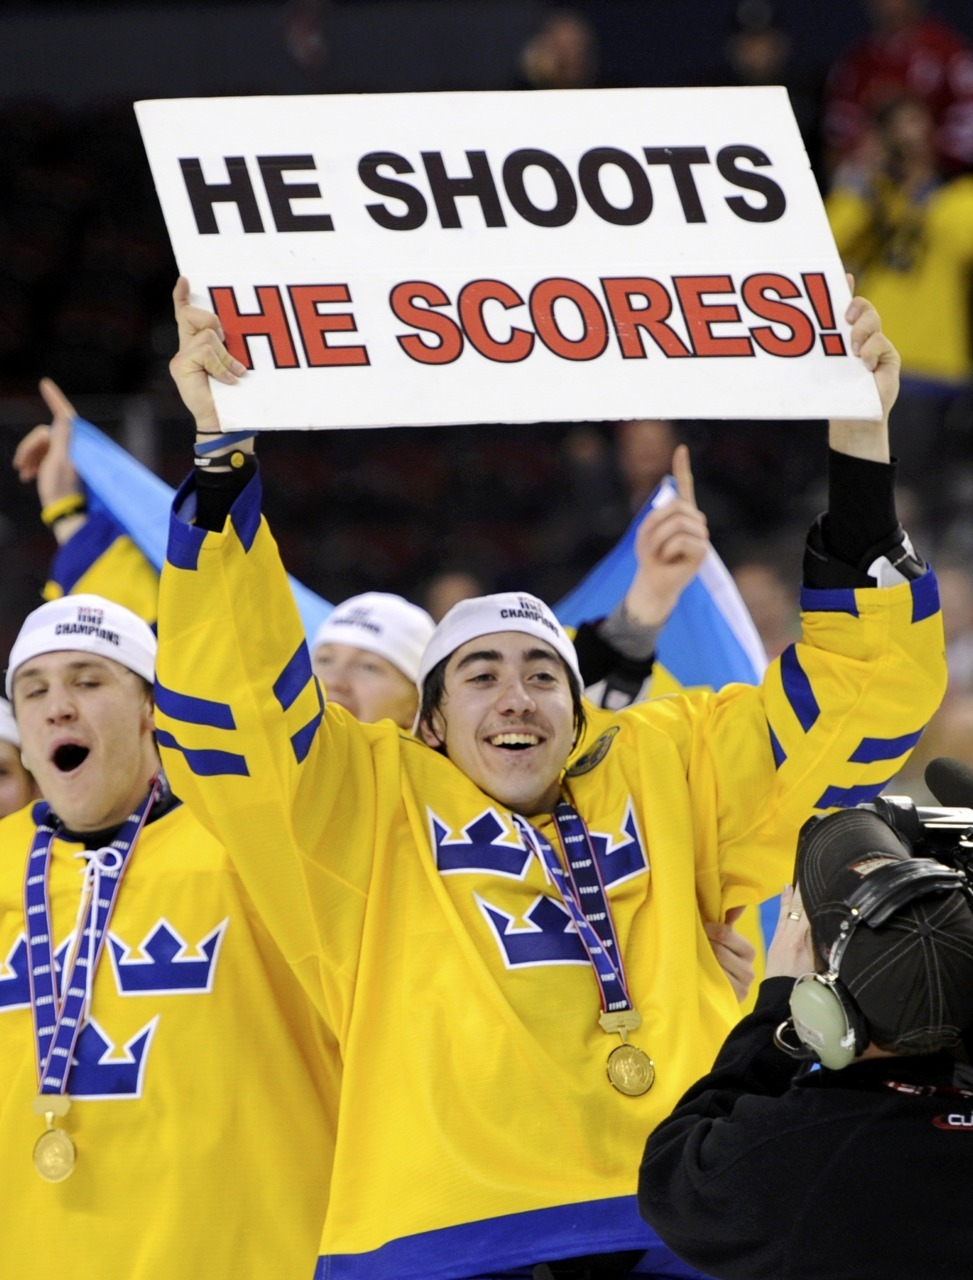 How Swede it isSweden's Mika Zibanejad, who scored the winning goal in overtime, holds a sign while celebrating after defeating Russia in the gold medal game. Photo: REUTERS/Todd Korol